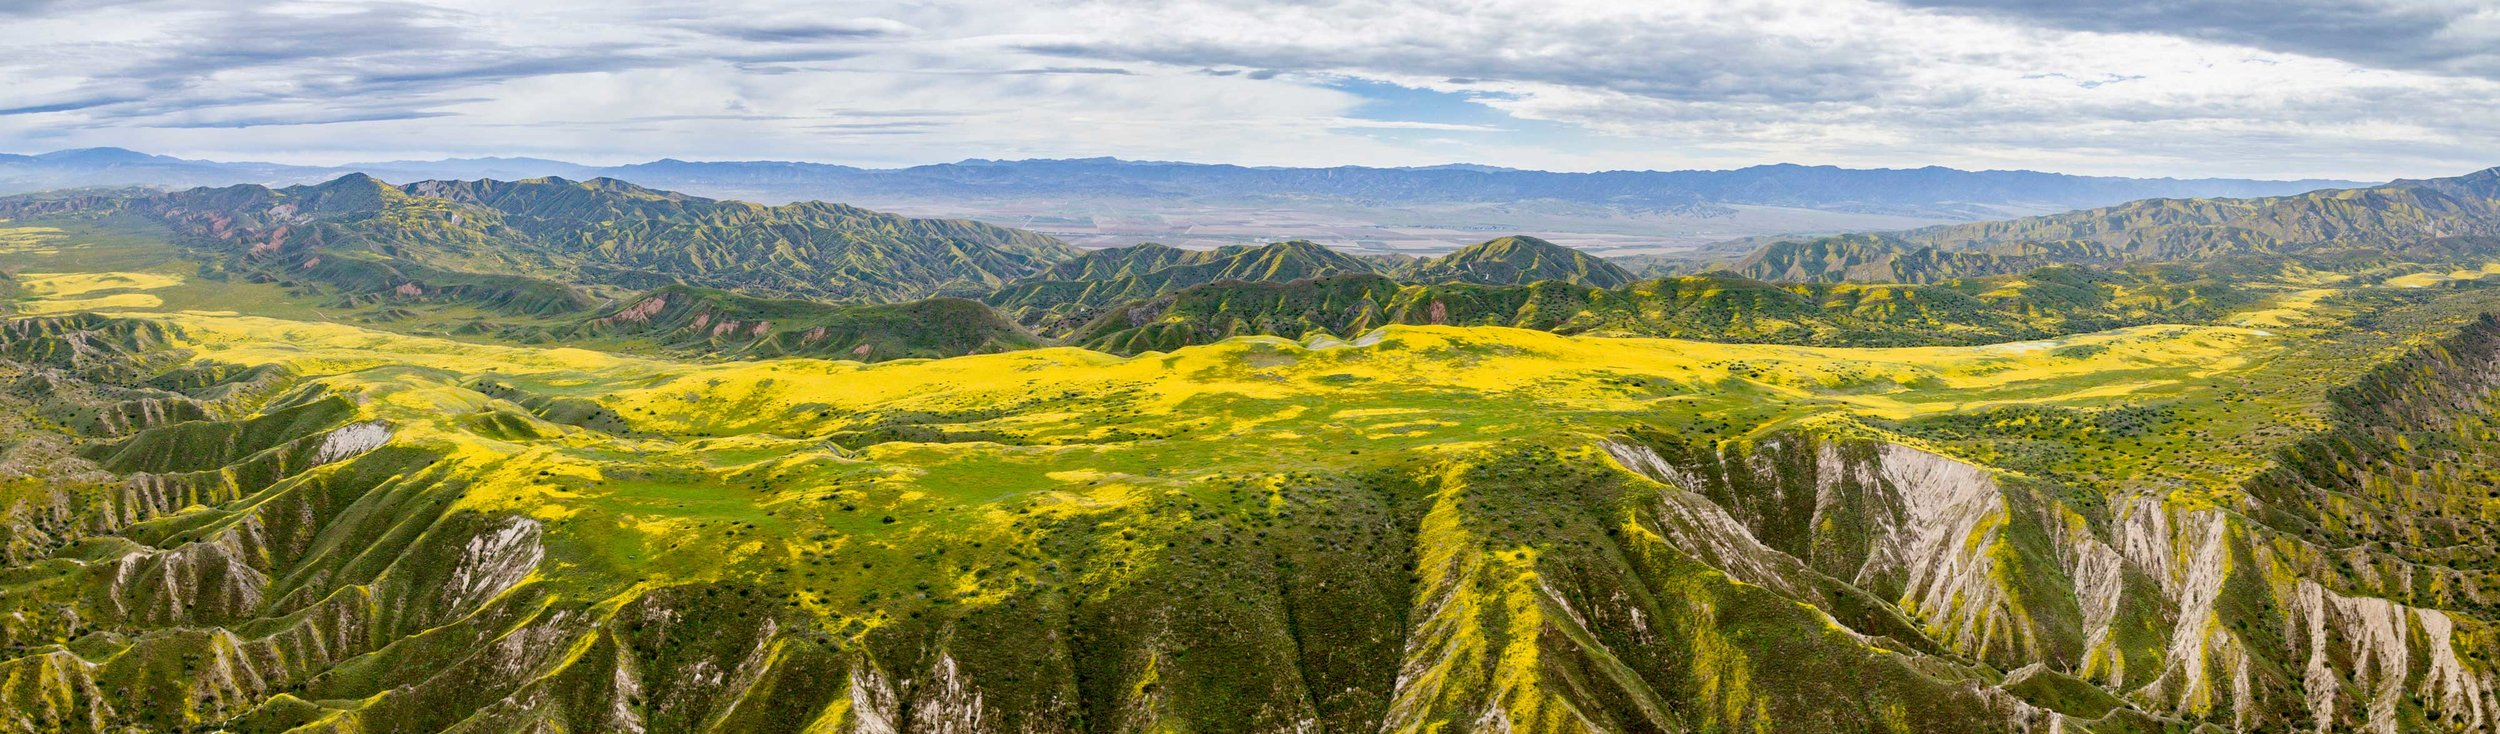 Brilliant yellow wildflowers stretch for miles on the Carrizo Plain, south of San Luis Obispo, CA.